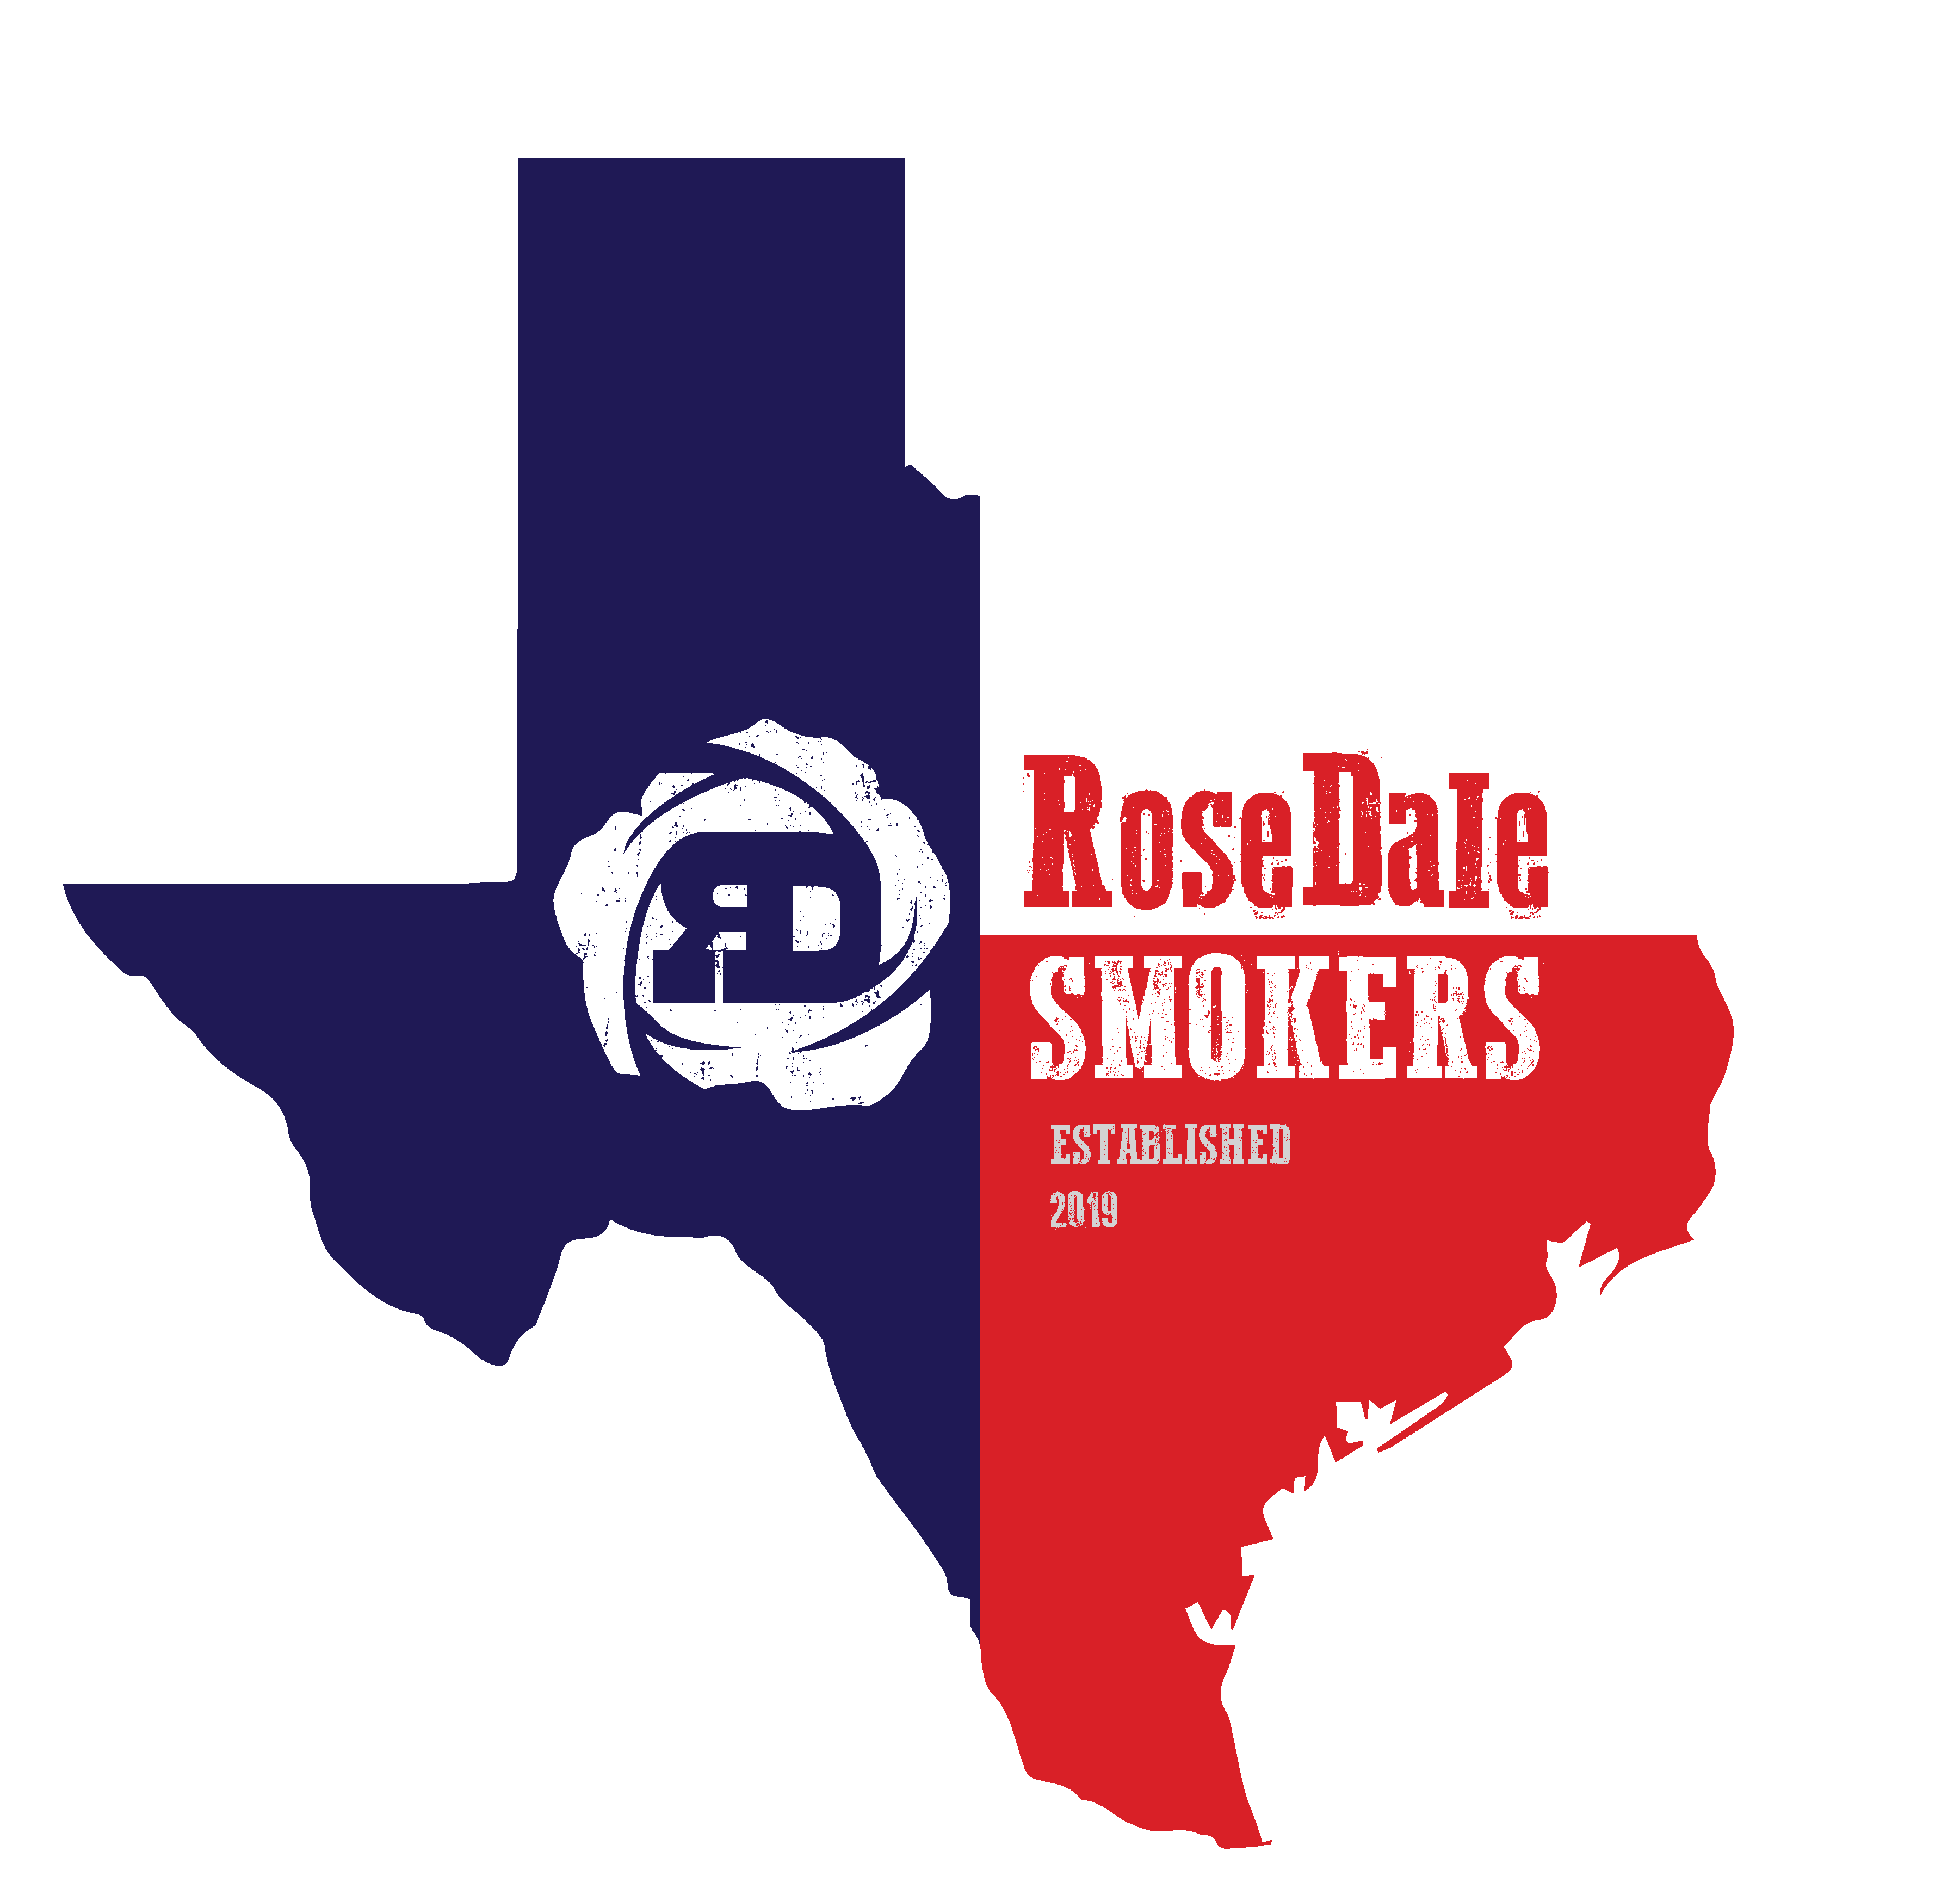 RoseDale Smokers Texas Flag